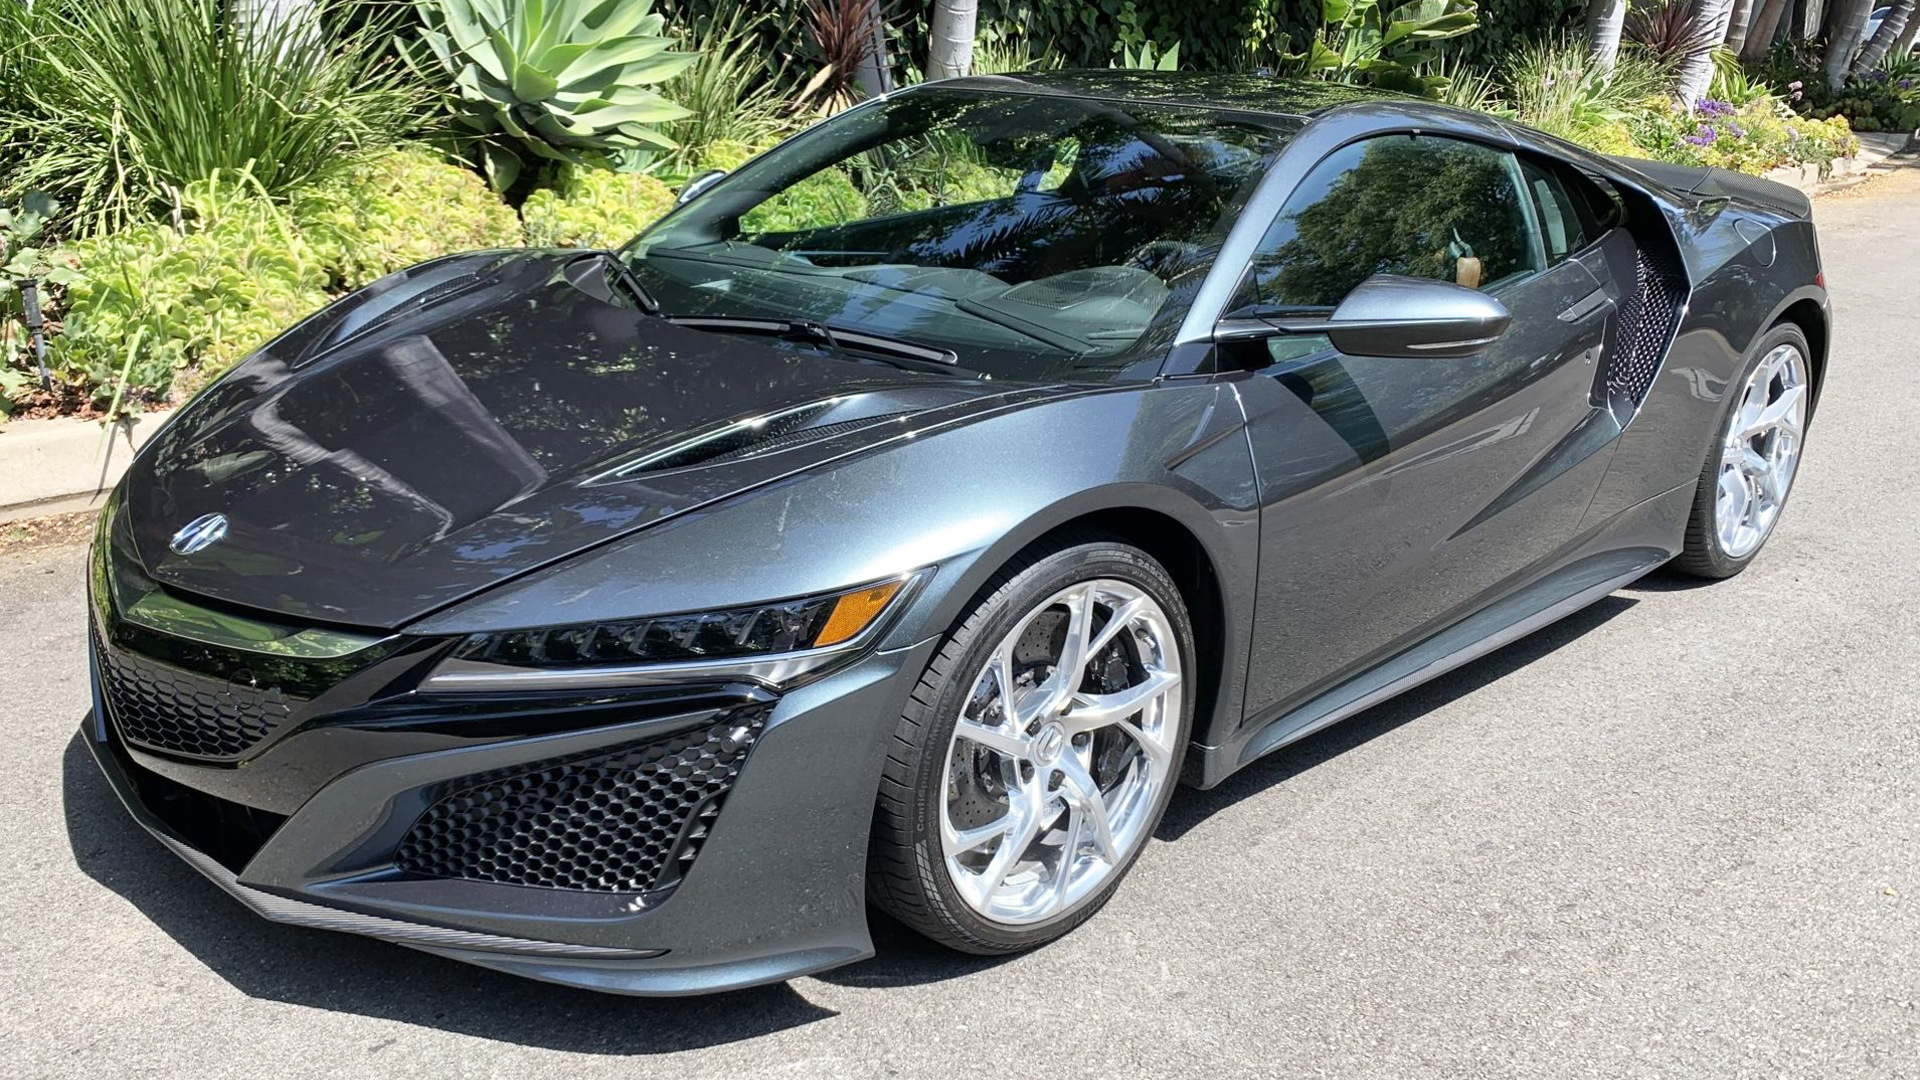 2017 Acura NSX with VIN ending in 004 - Photo credit: Bring A Trailer